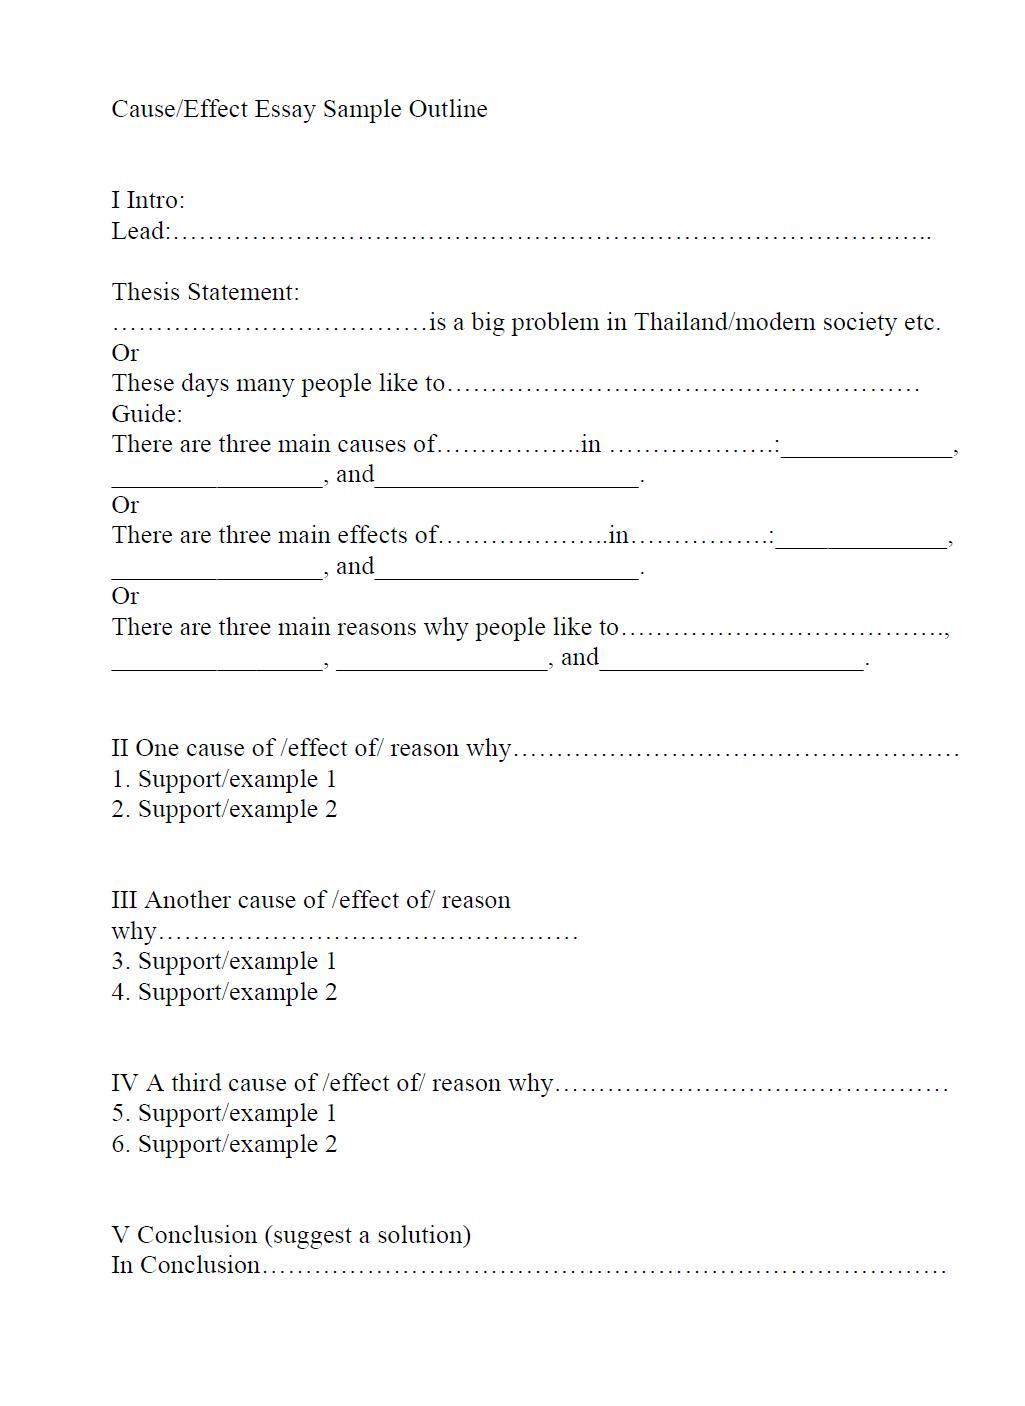 005 Opinion Essay Outline Format Toulmin Striking Method Full